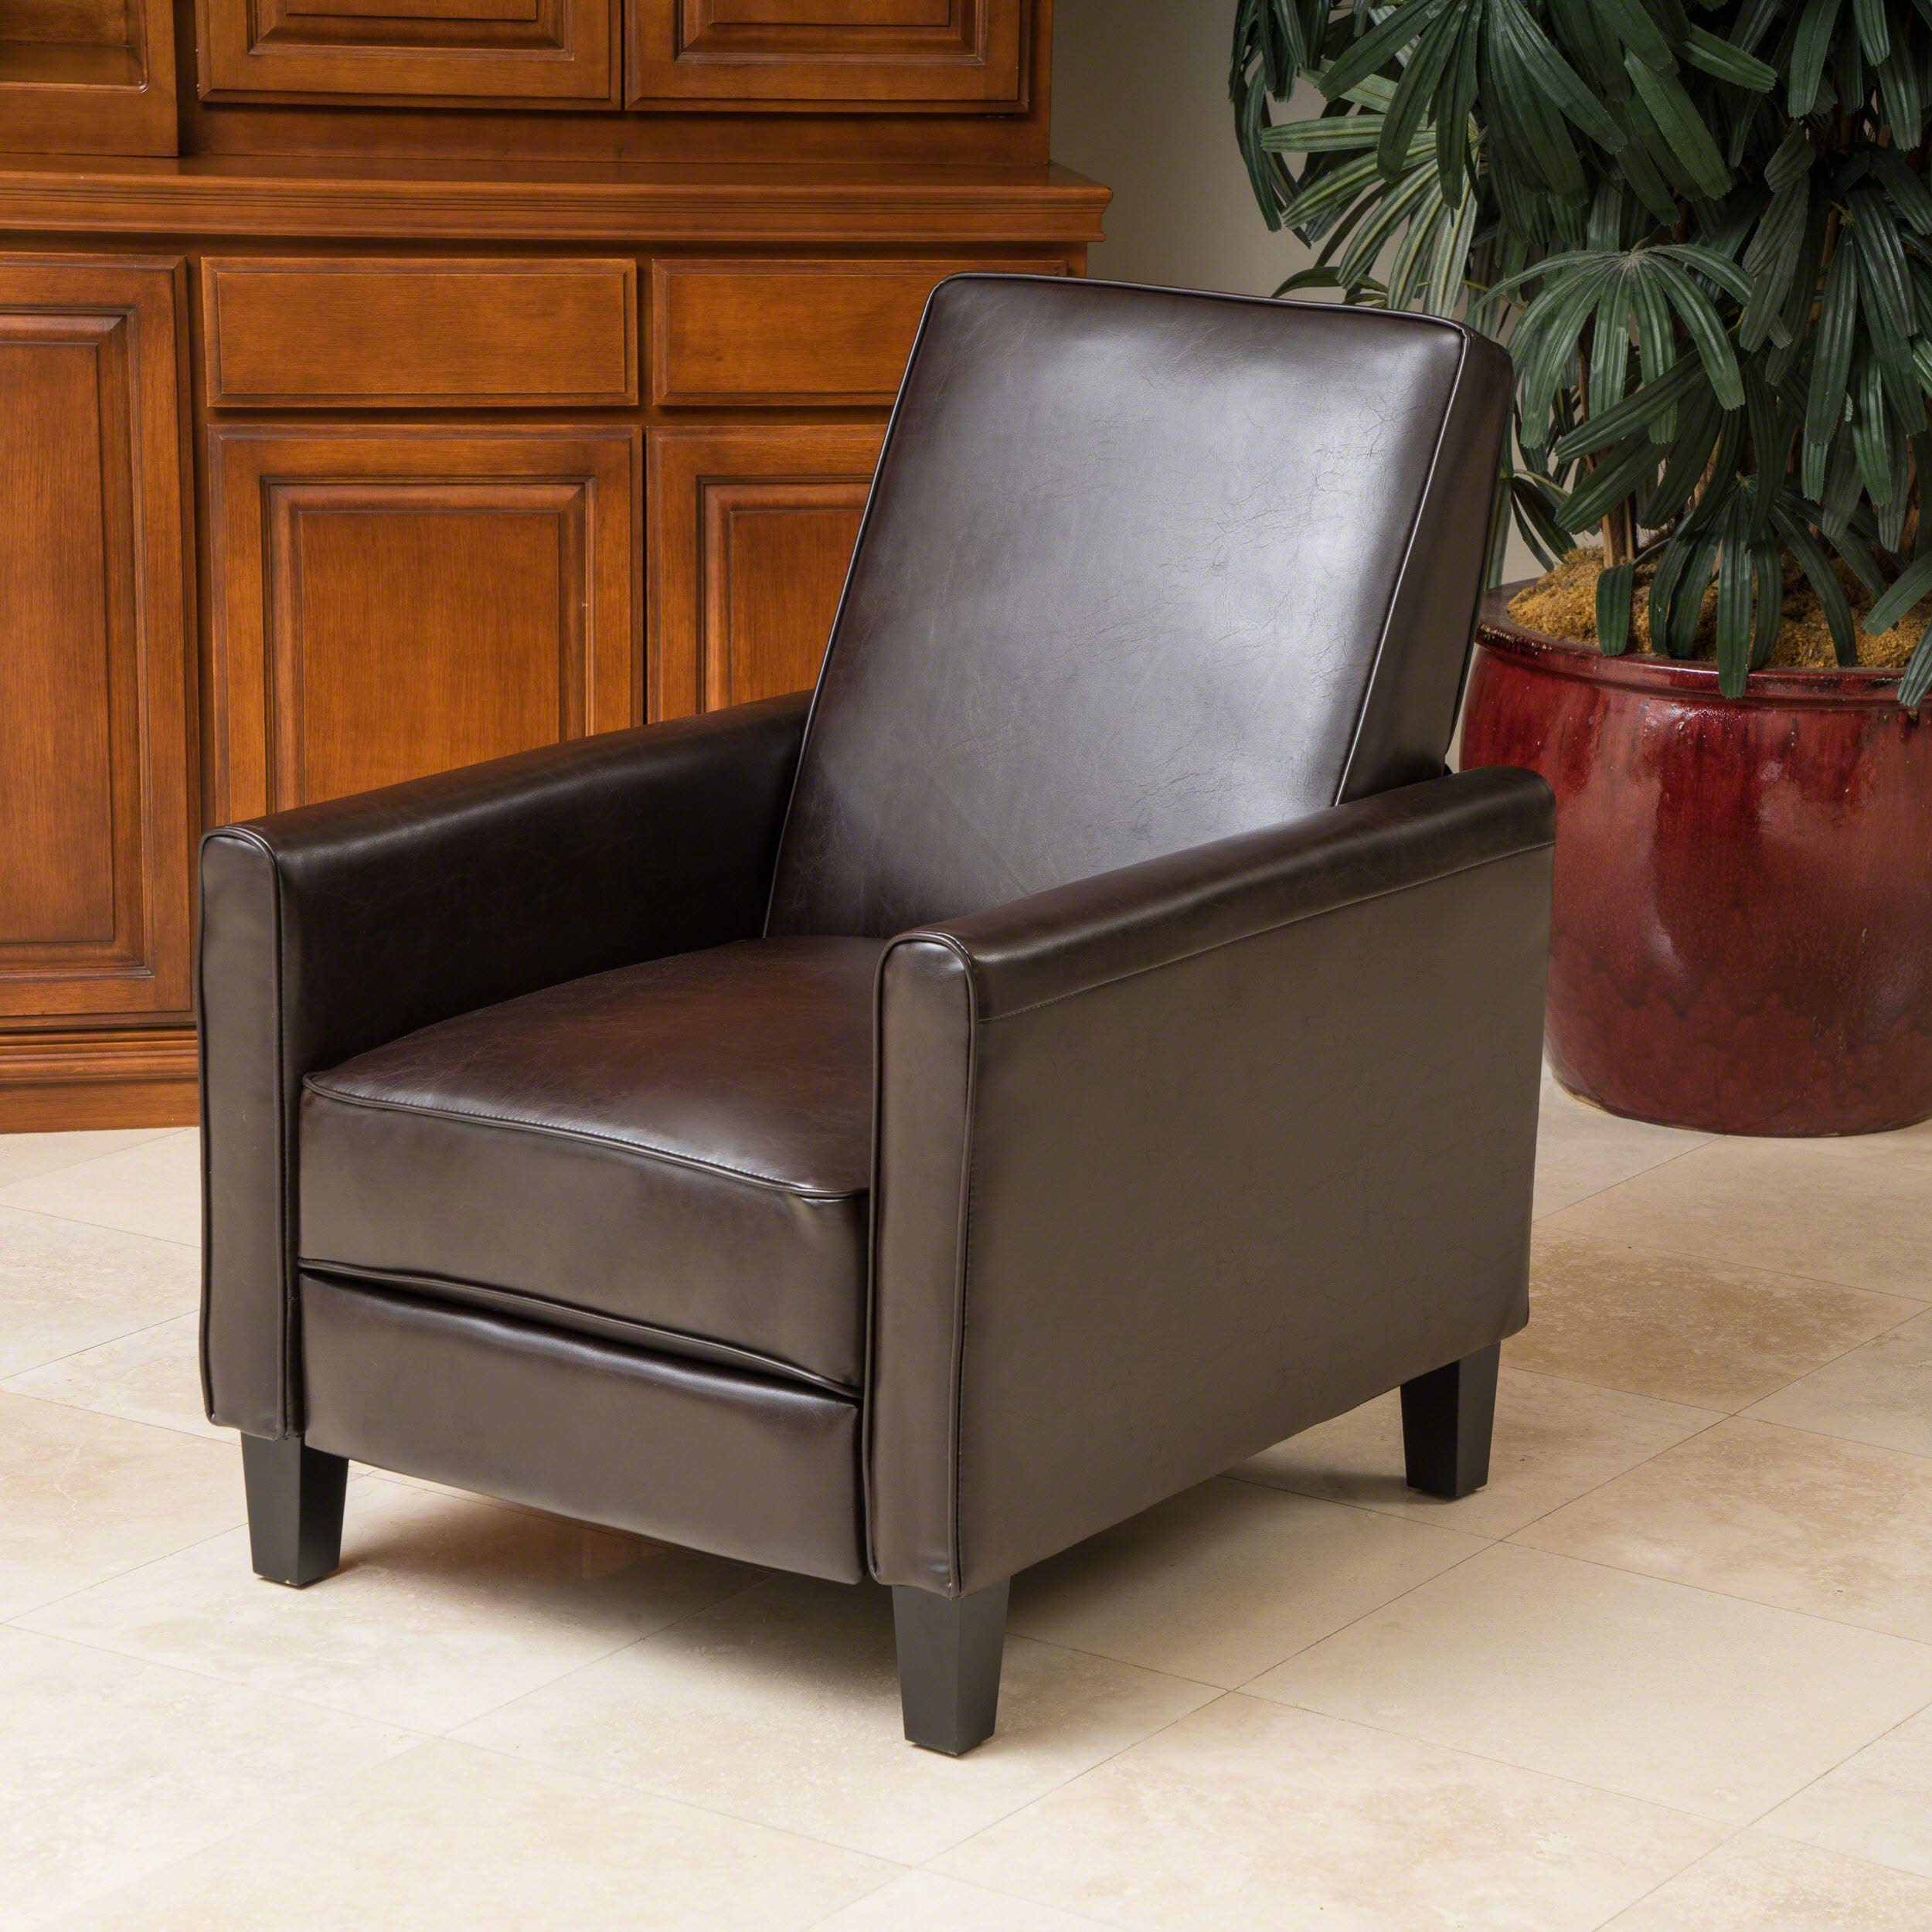 Christopher Knight Home Lucas Recliner Club Chair, Brown